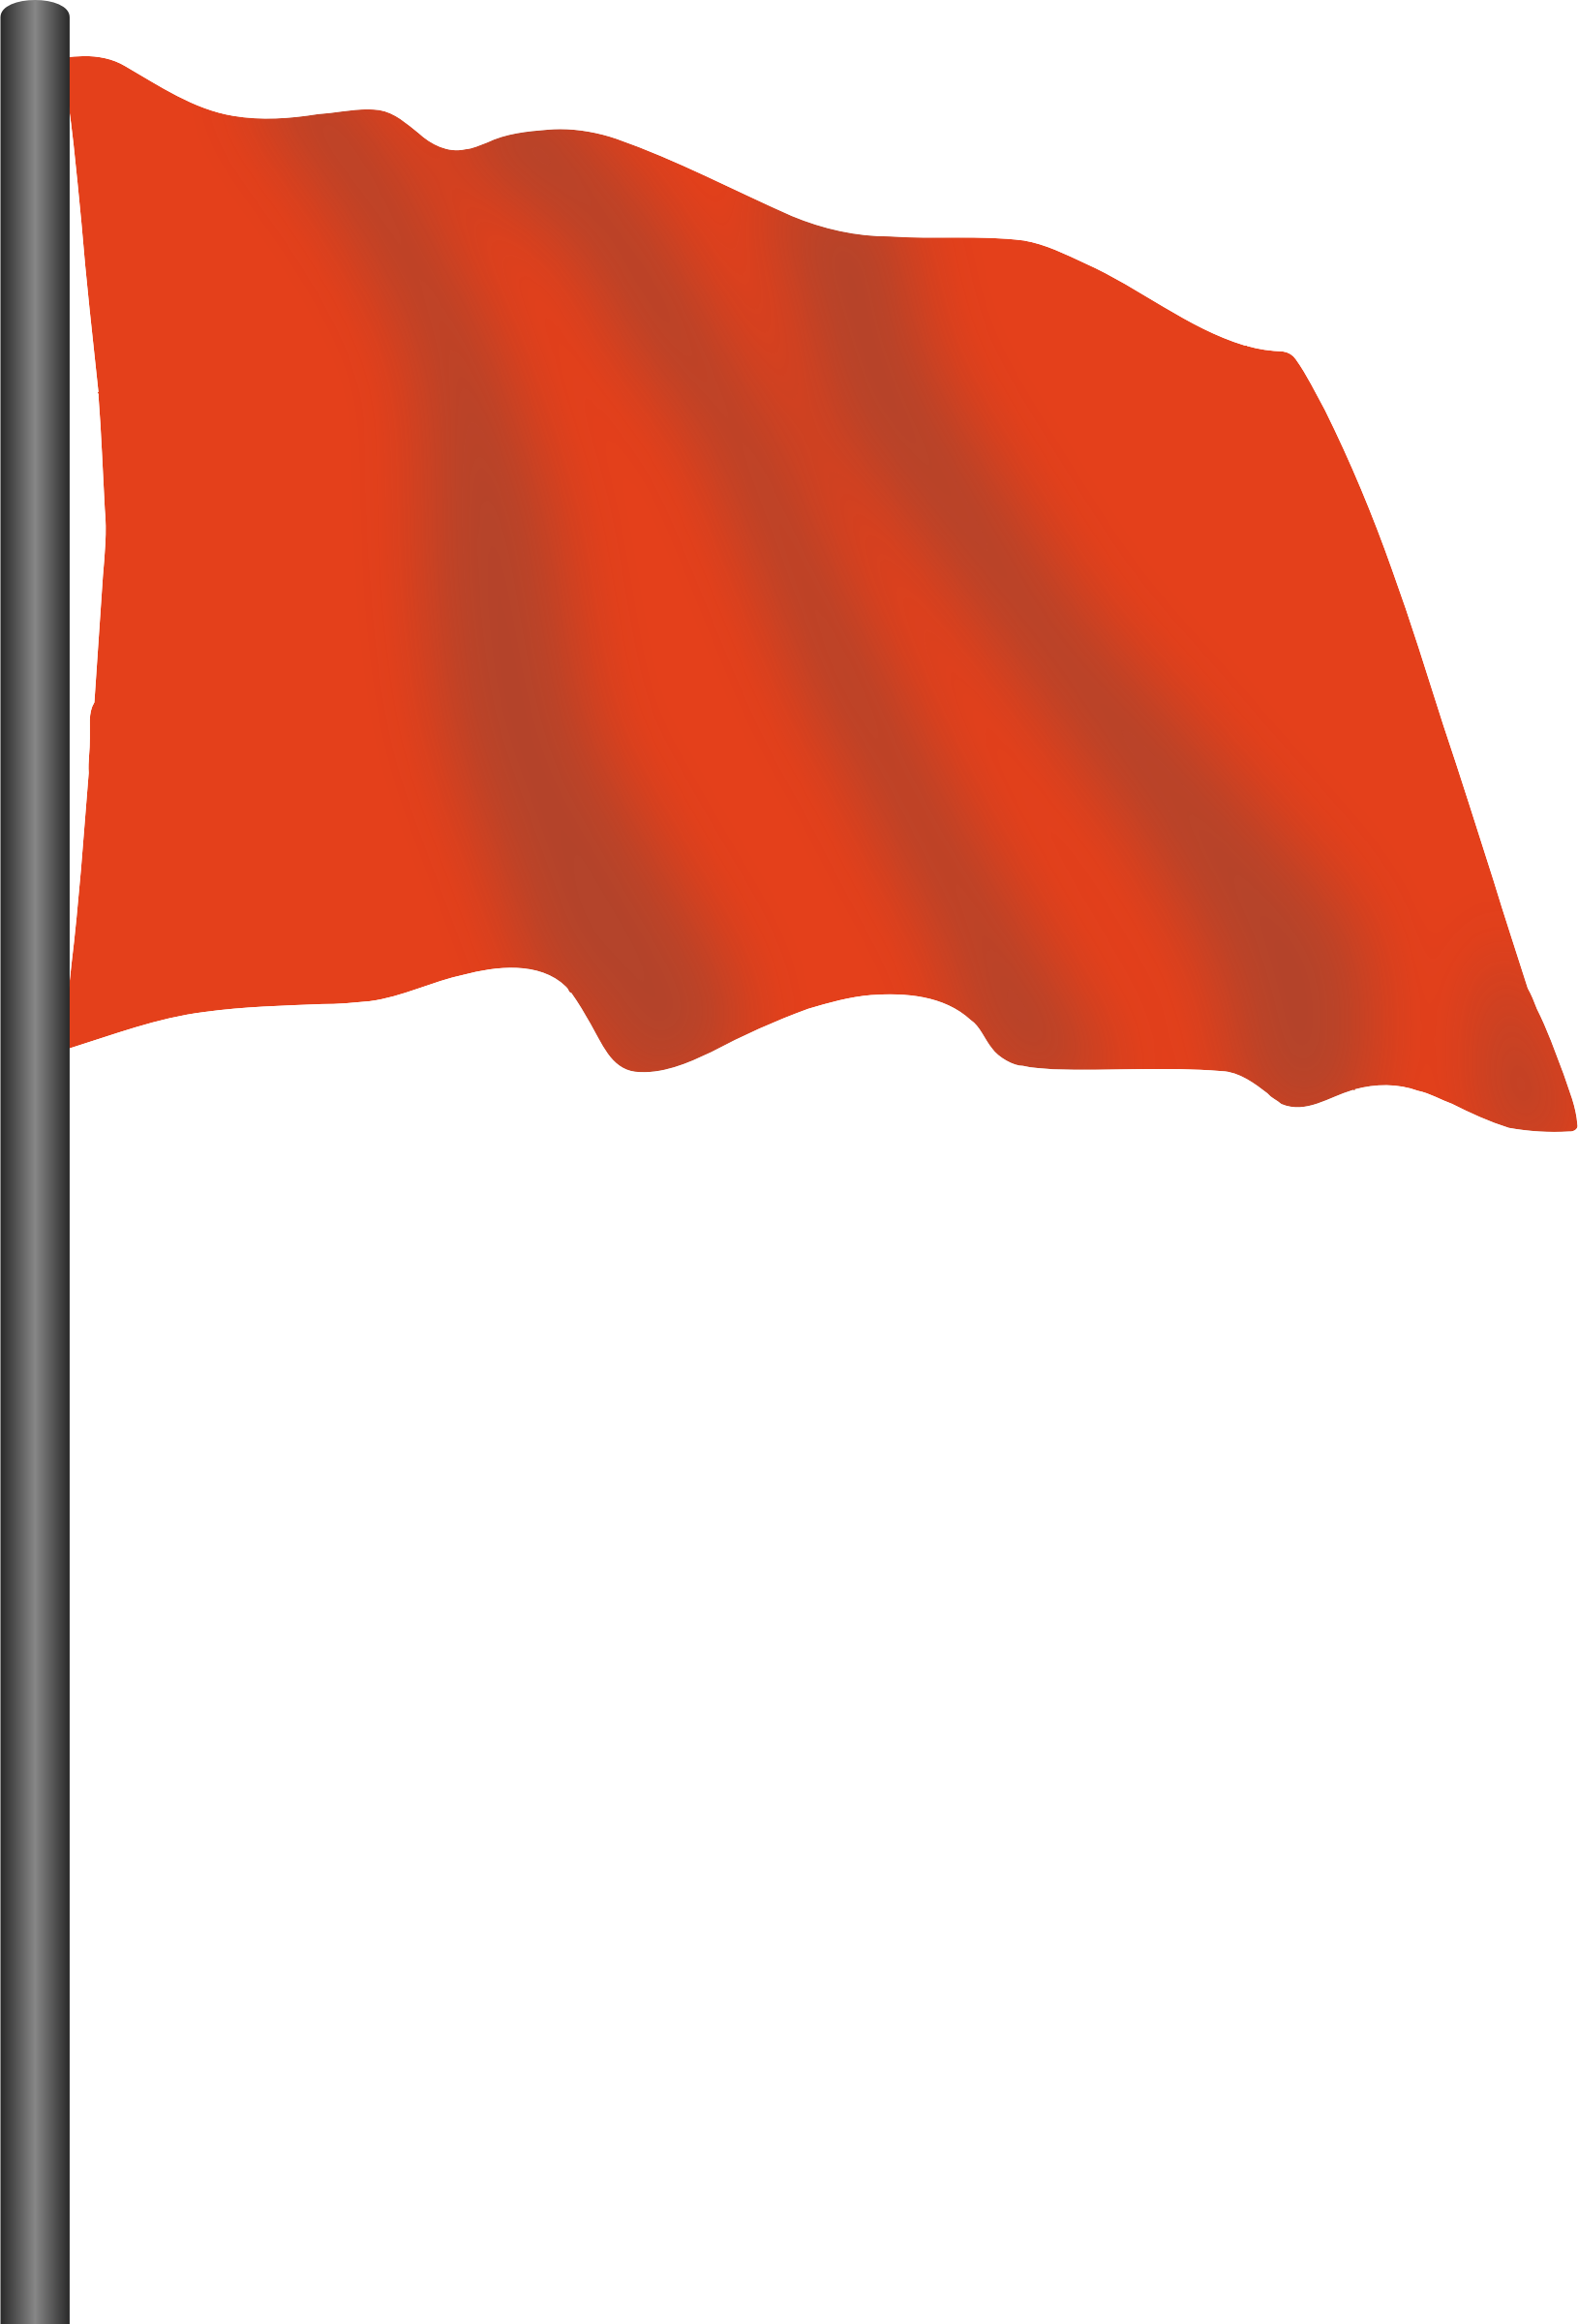 Motor racing flag 2 - red flag by Firkin